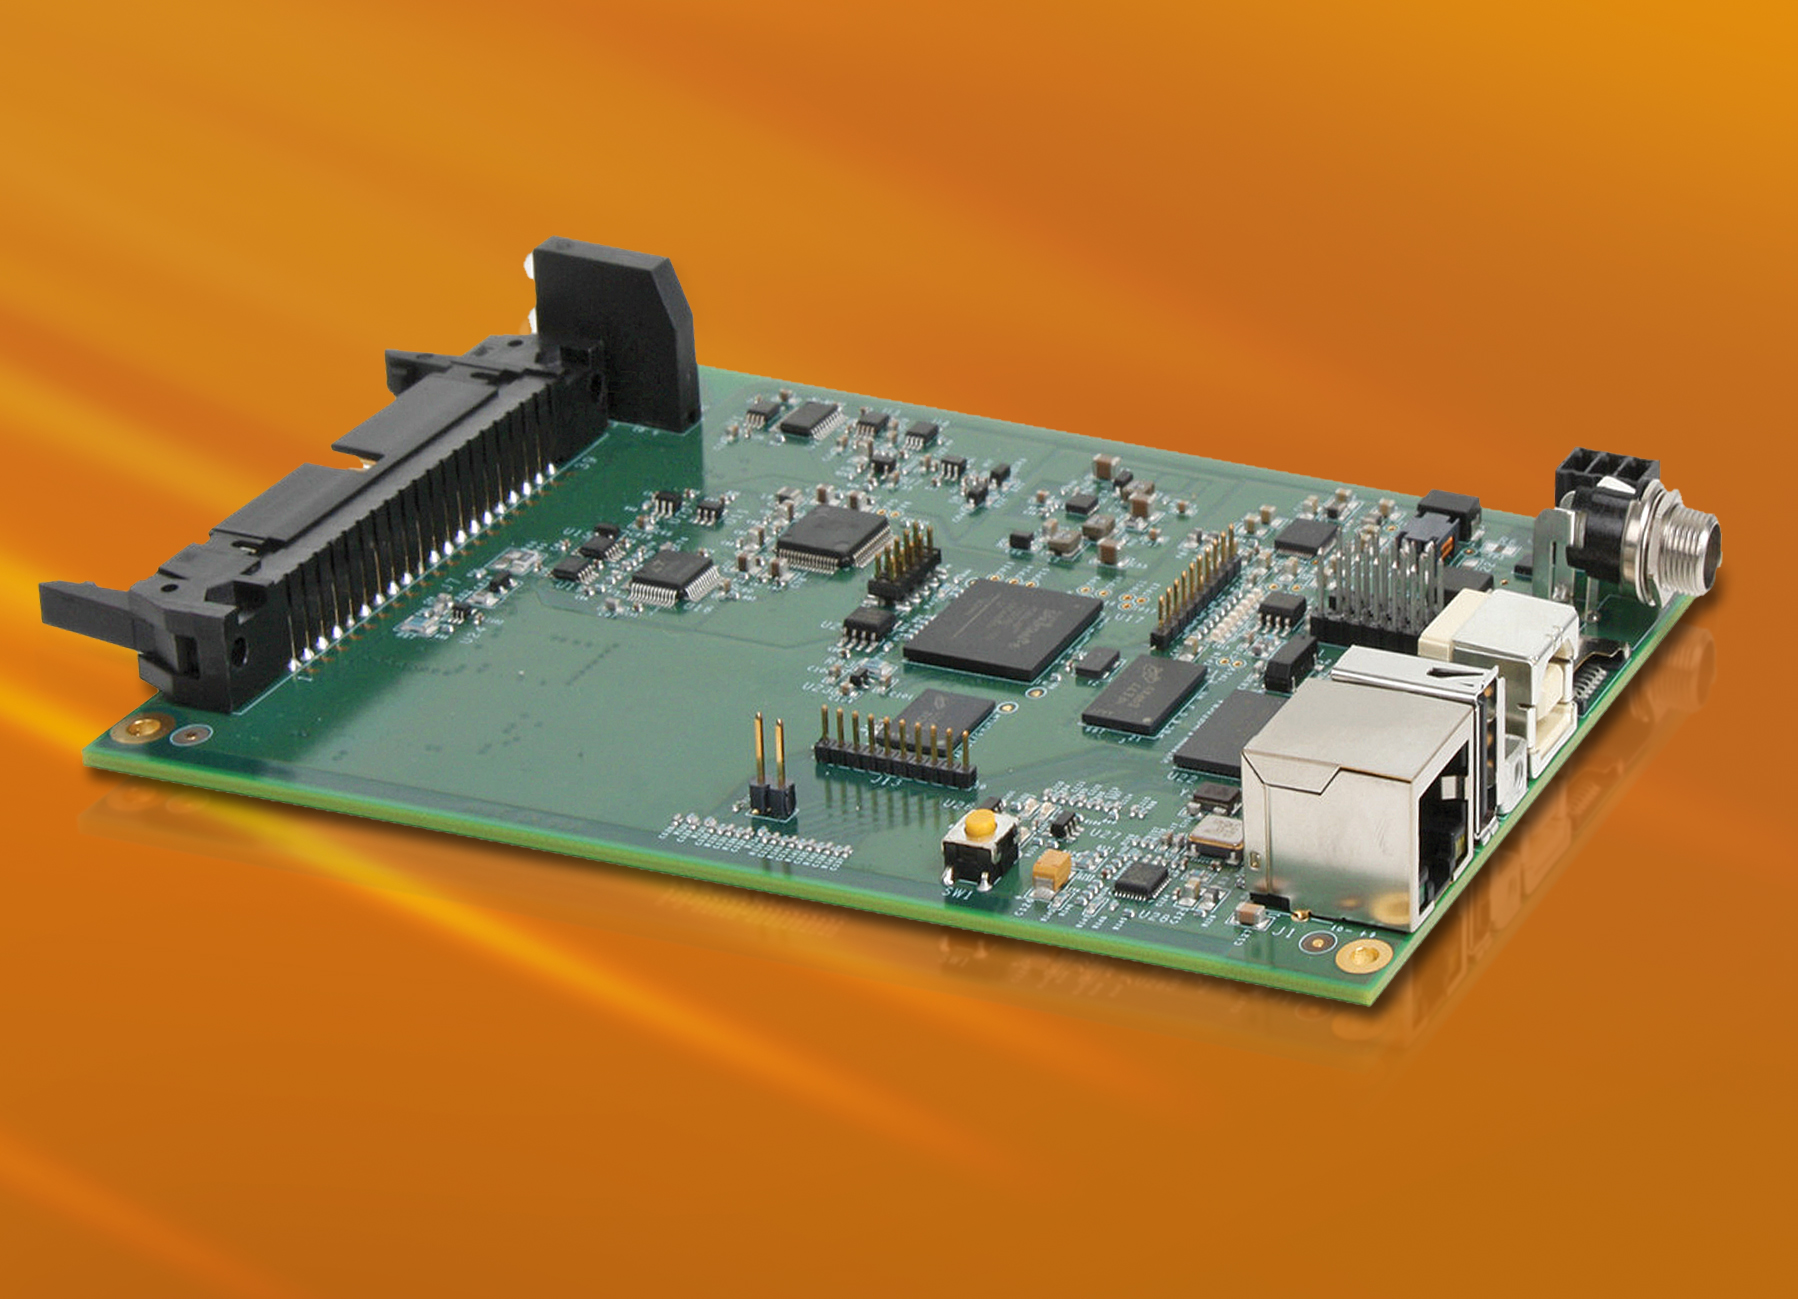 Embedded DAQ module with ARM processor and 8X 400kHz analogue inputs